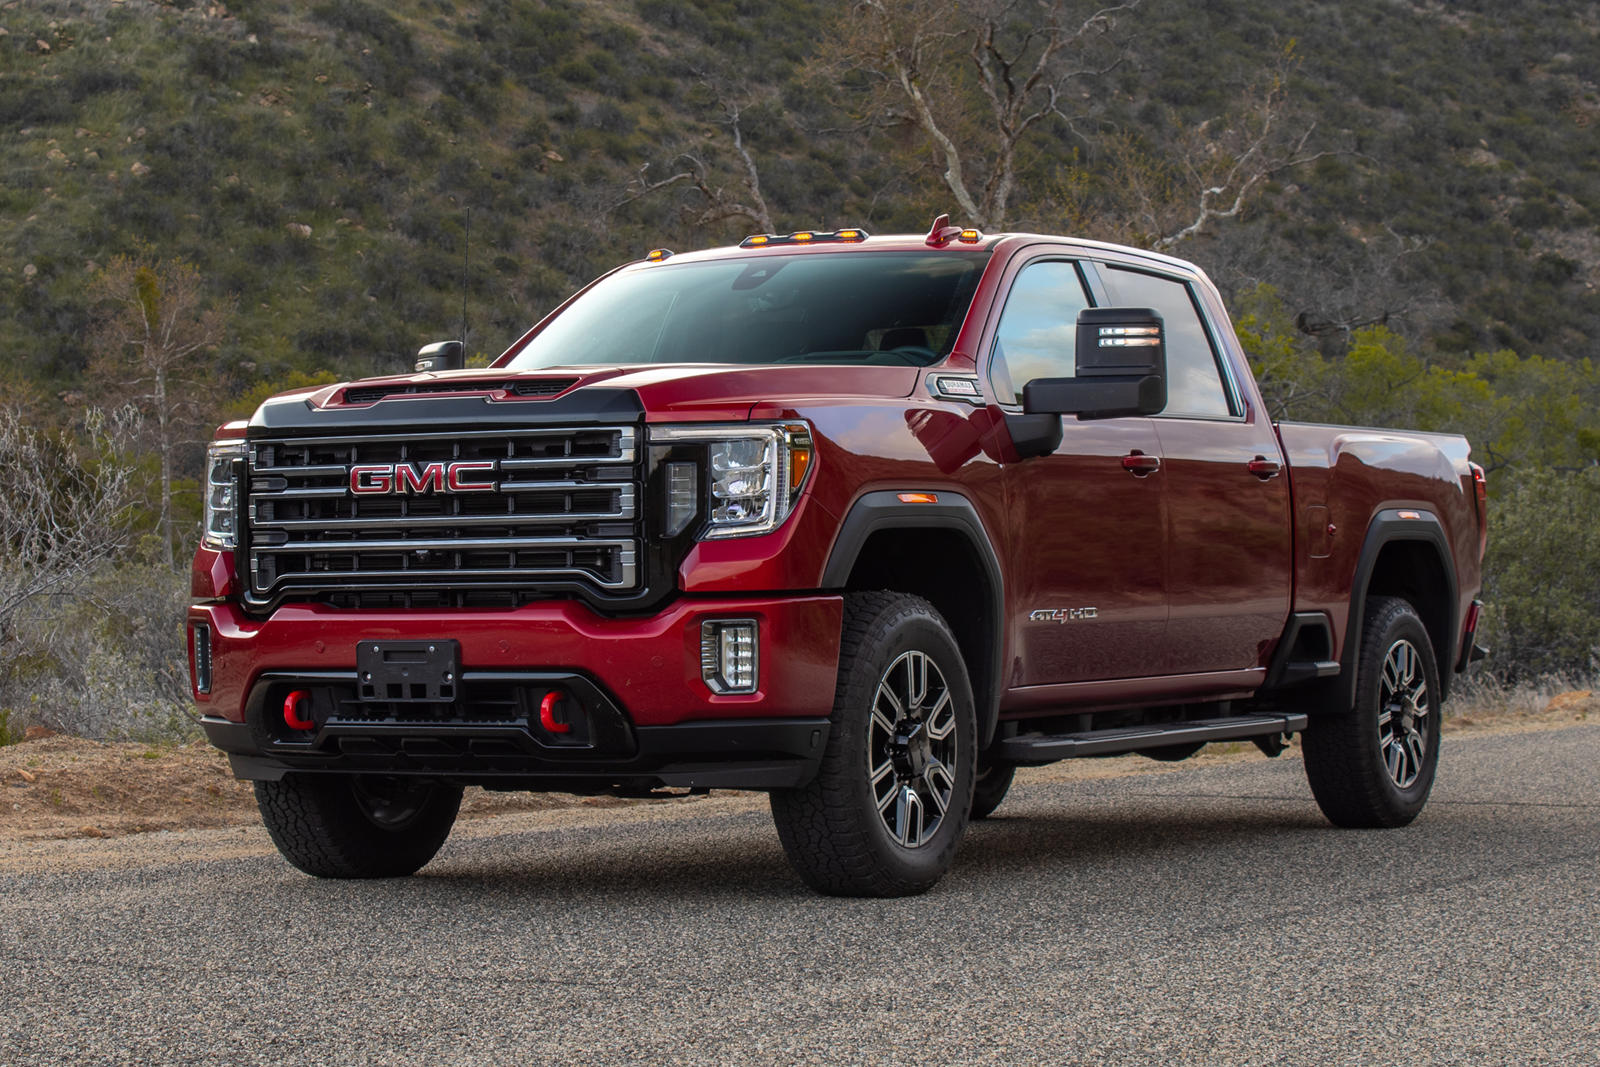 2020 Gmc Sierra 2500hd Review Trims Specs Price New Interior Features Exterior Design And Specifications Carbuzz